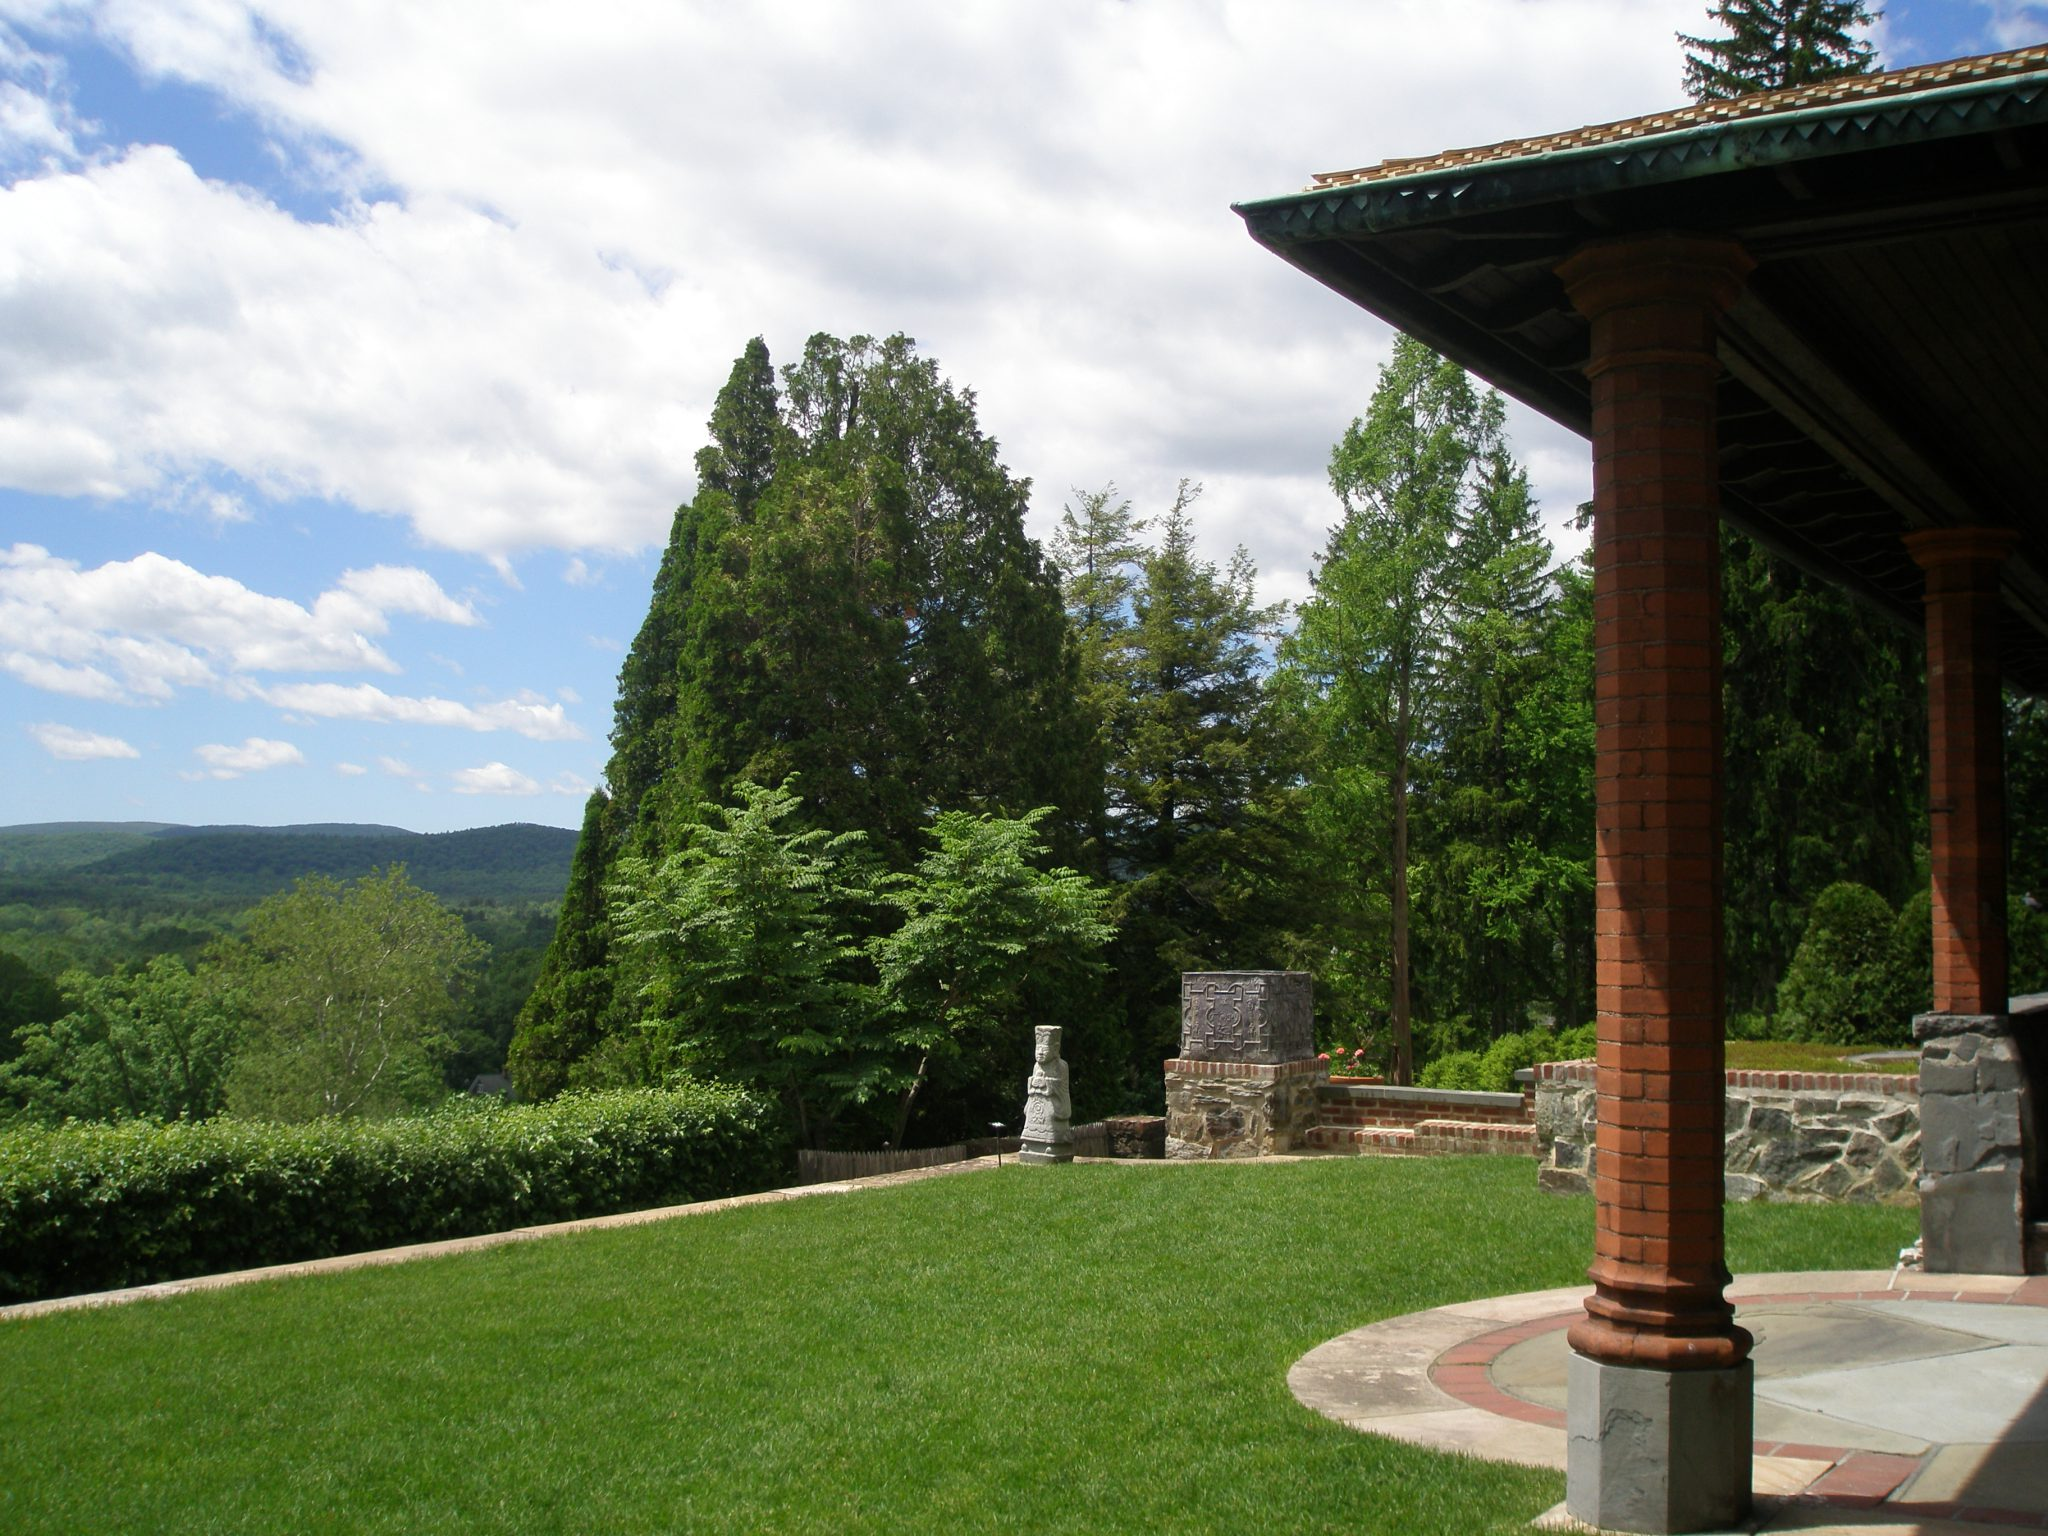 View toward the Western hills, from the Top Lawn